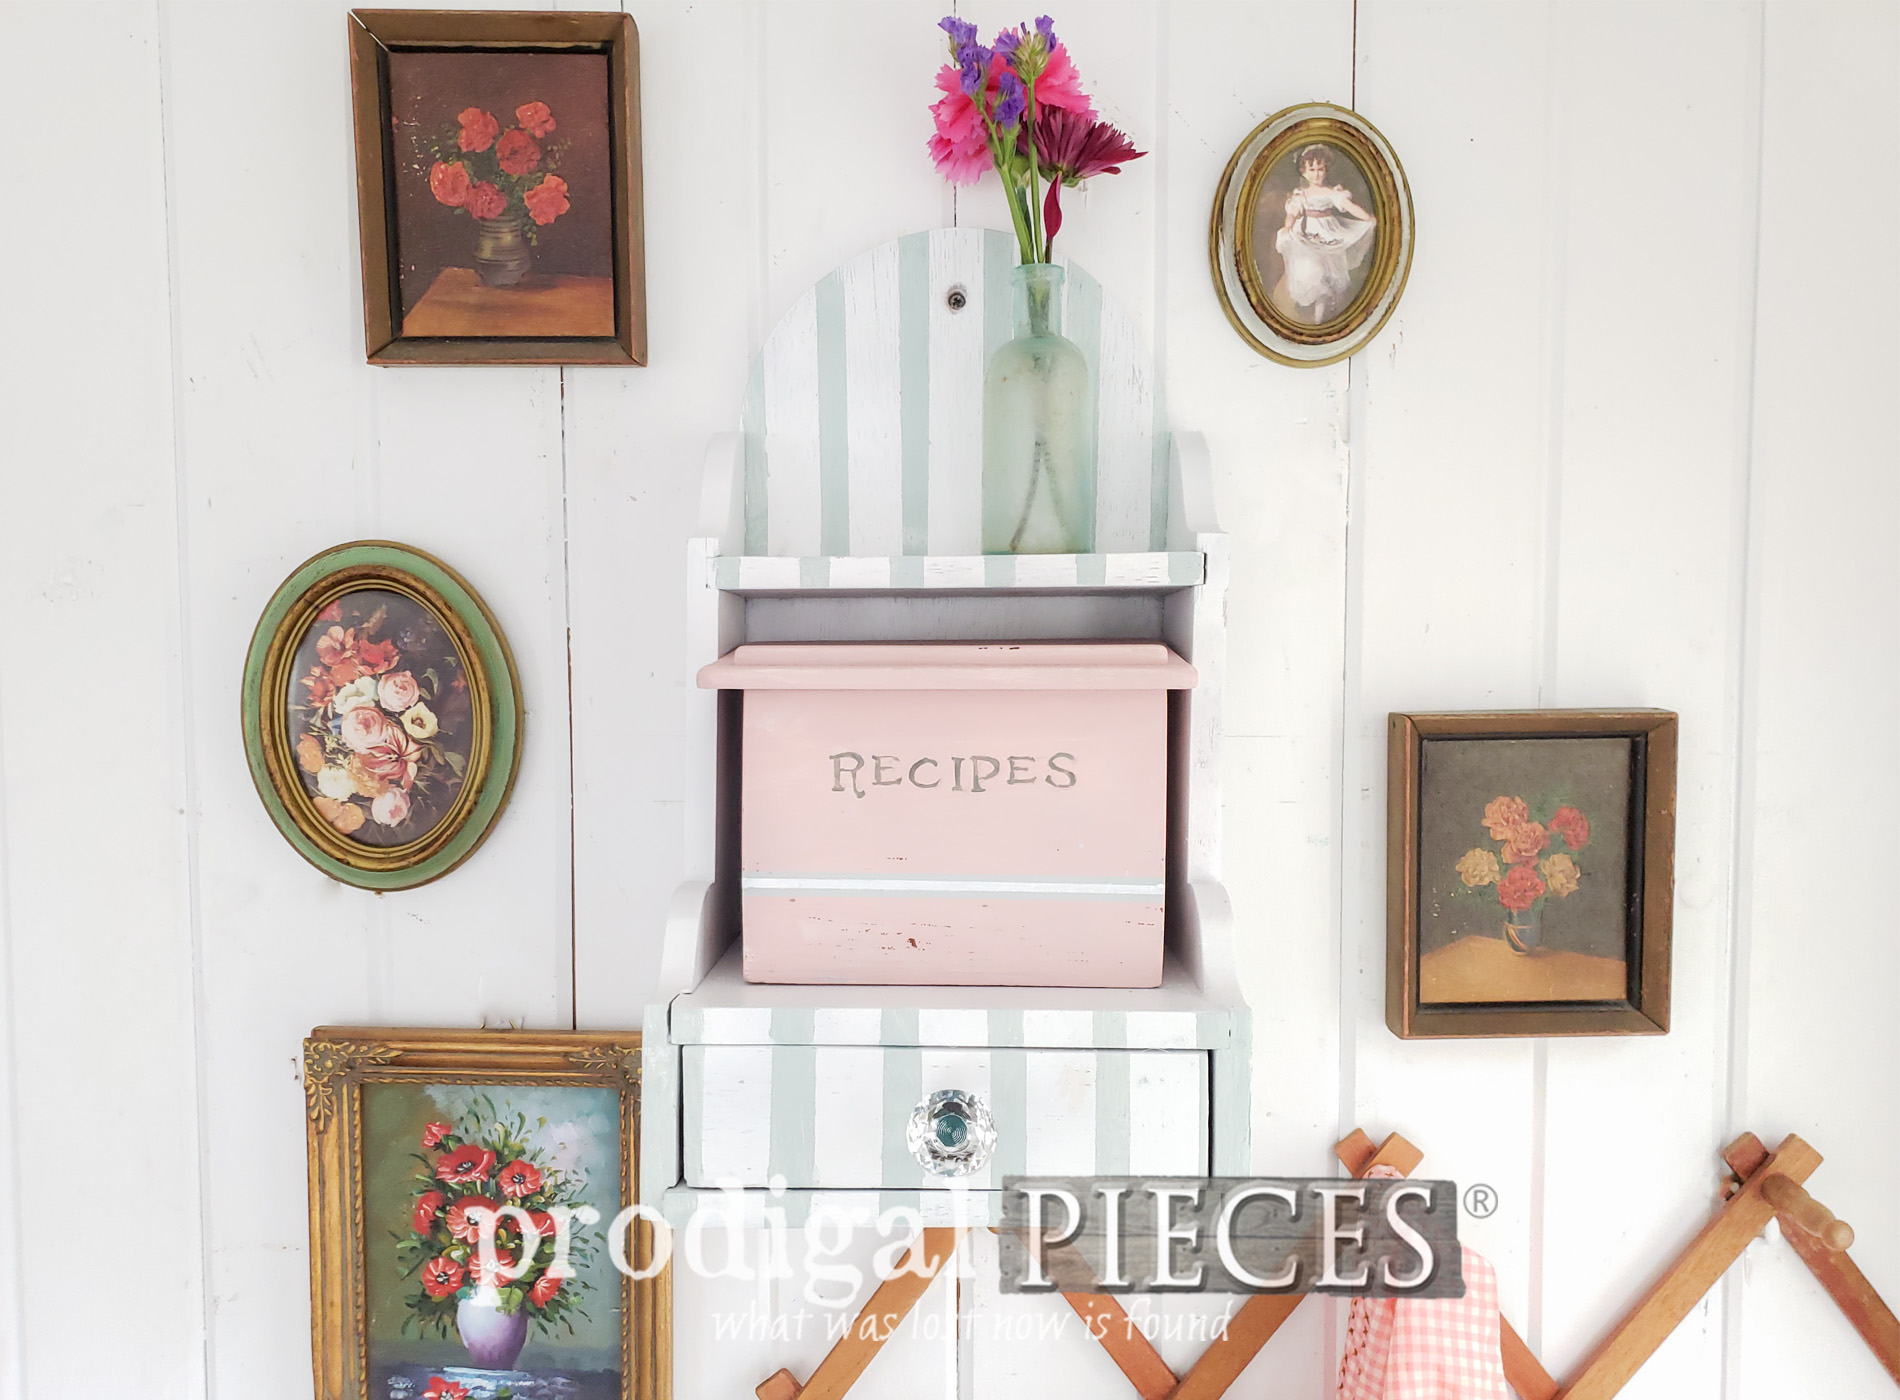 Featured Vintage Recipe Box Made New by Larissa of Prodigal Pieces | Video tutorial at prodigalpieces.com #prodigalpieces #diy #handmade #home #vintage #homedecor